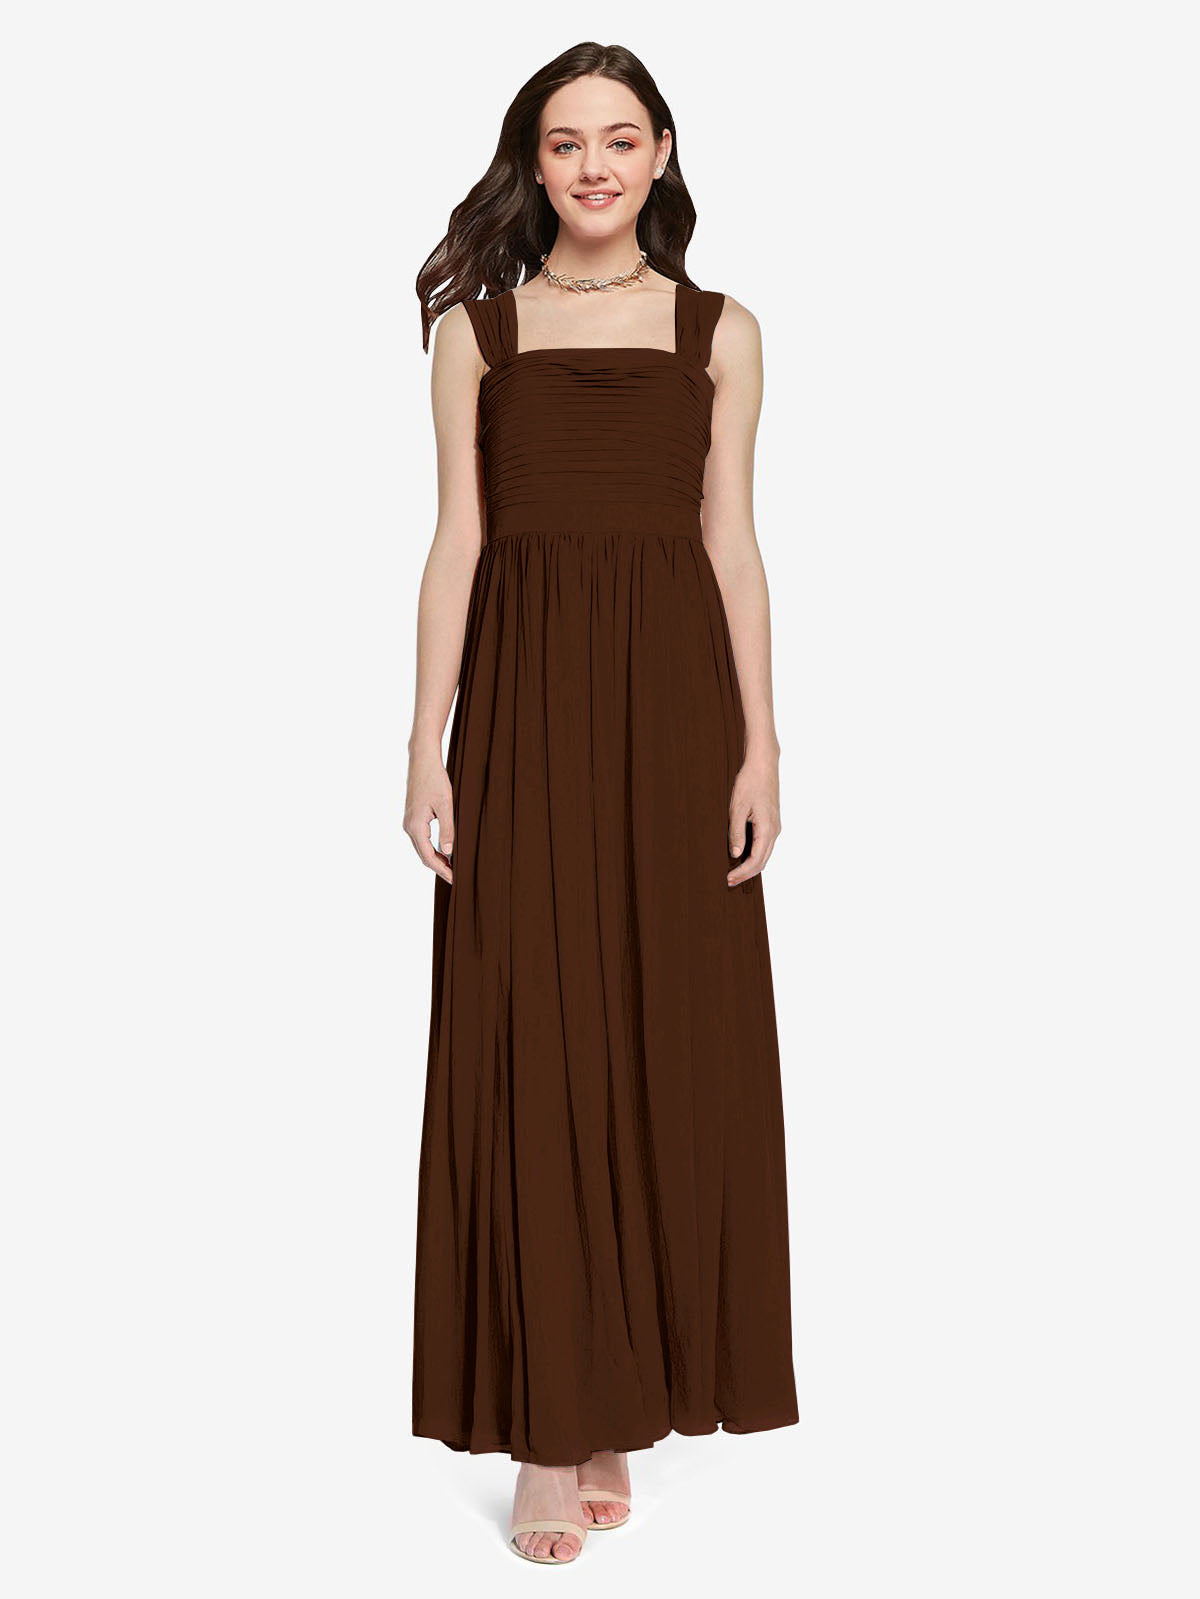 Long A-Line Square Sleeveless Chocolate Chiffon Bridesmaid Dress Aldridge